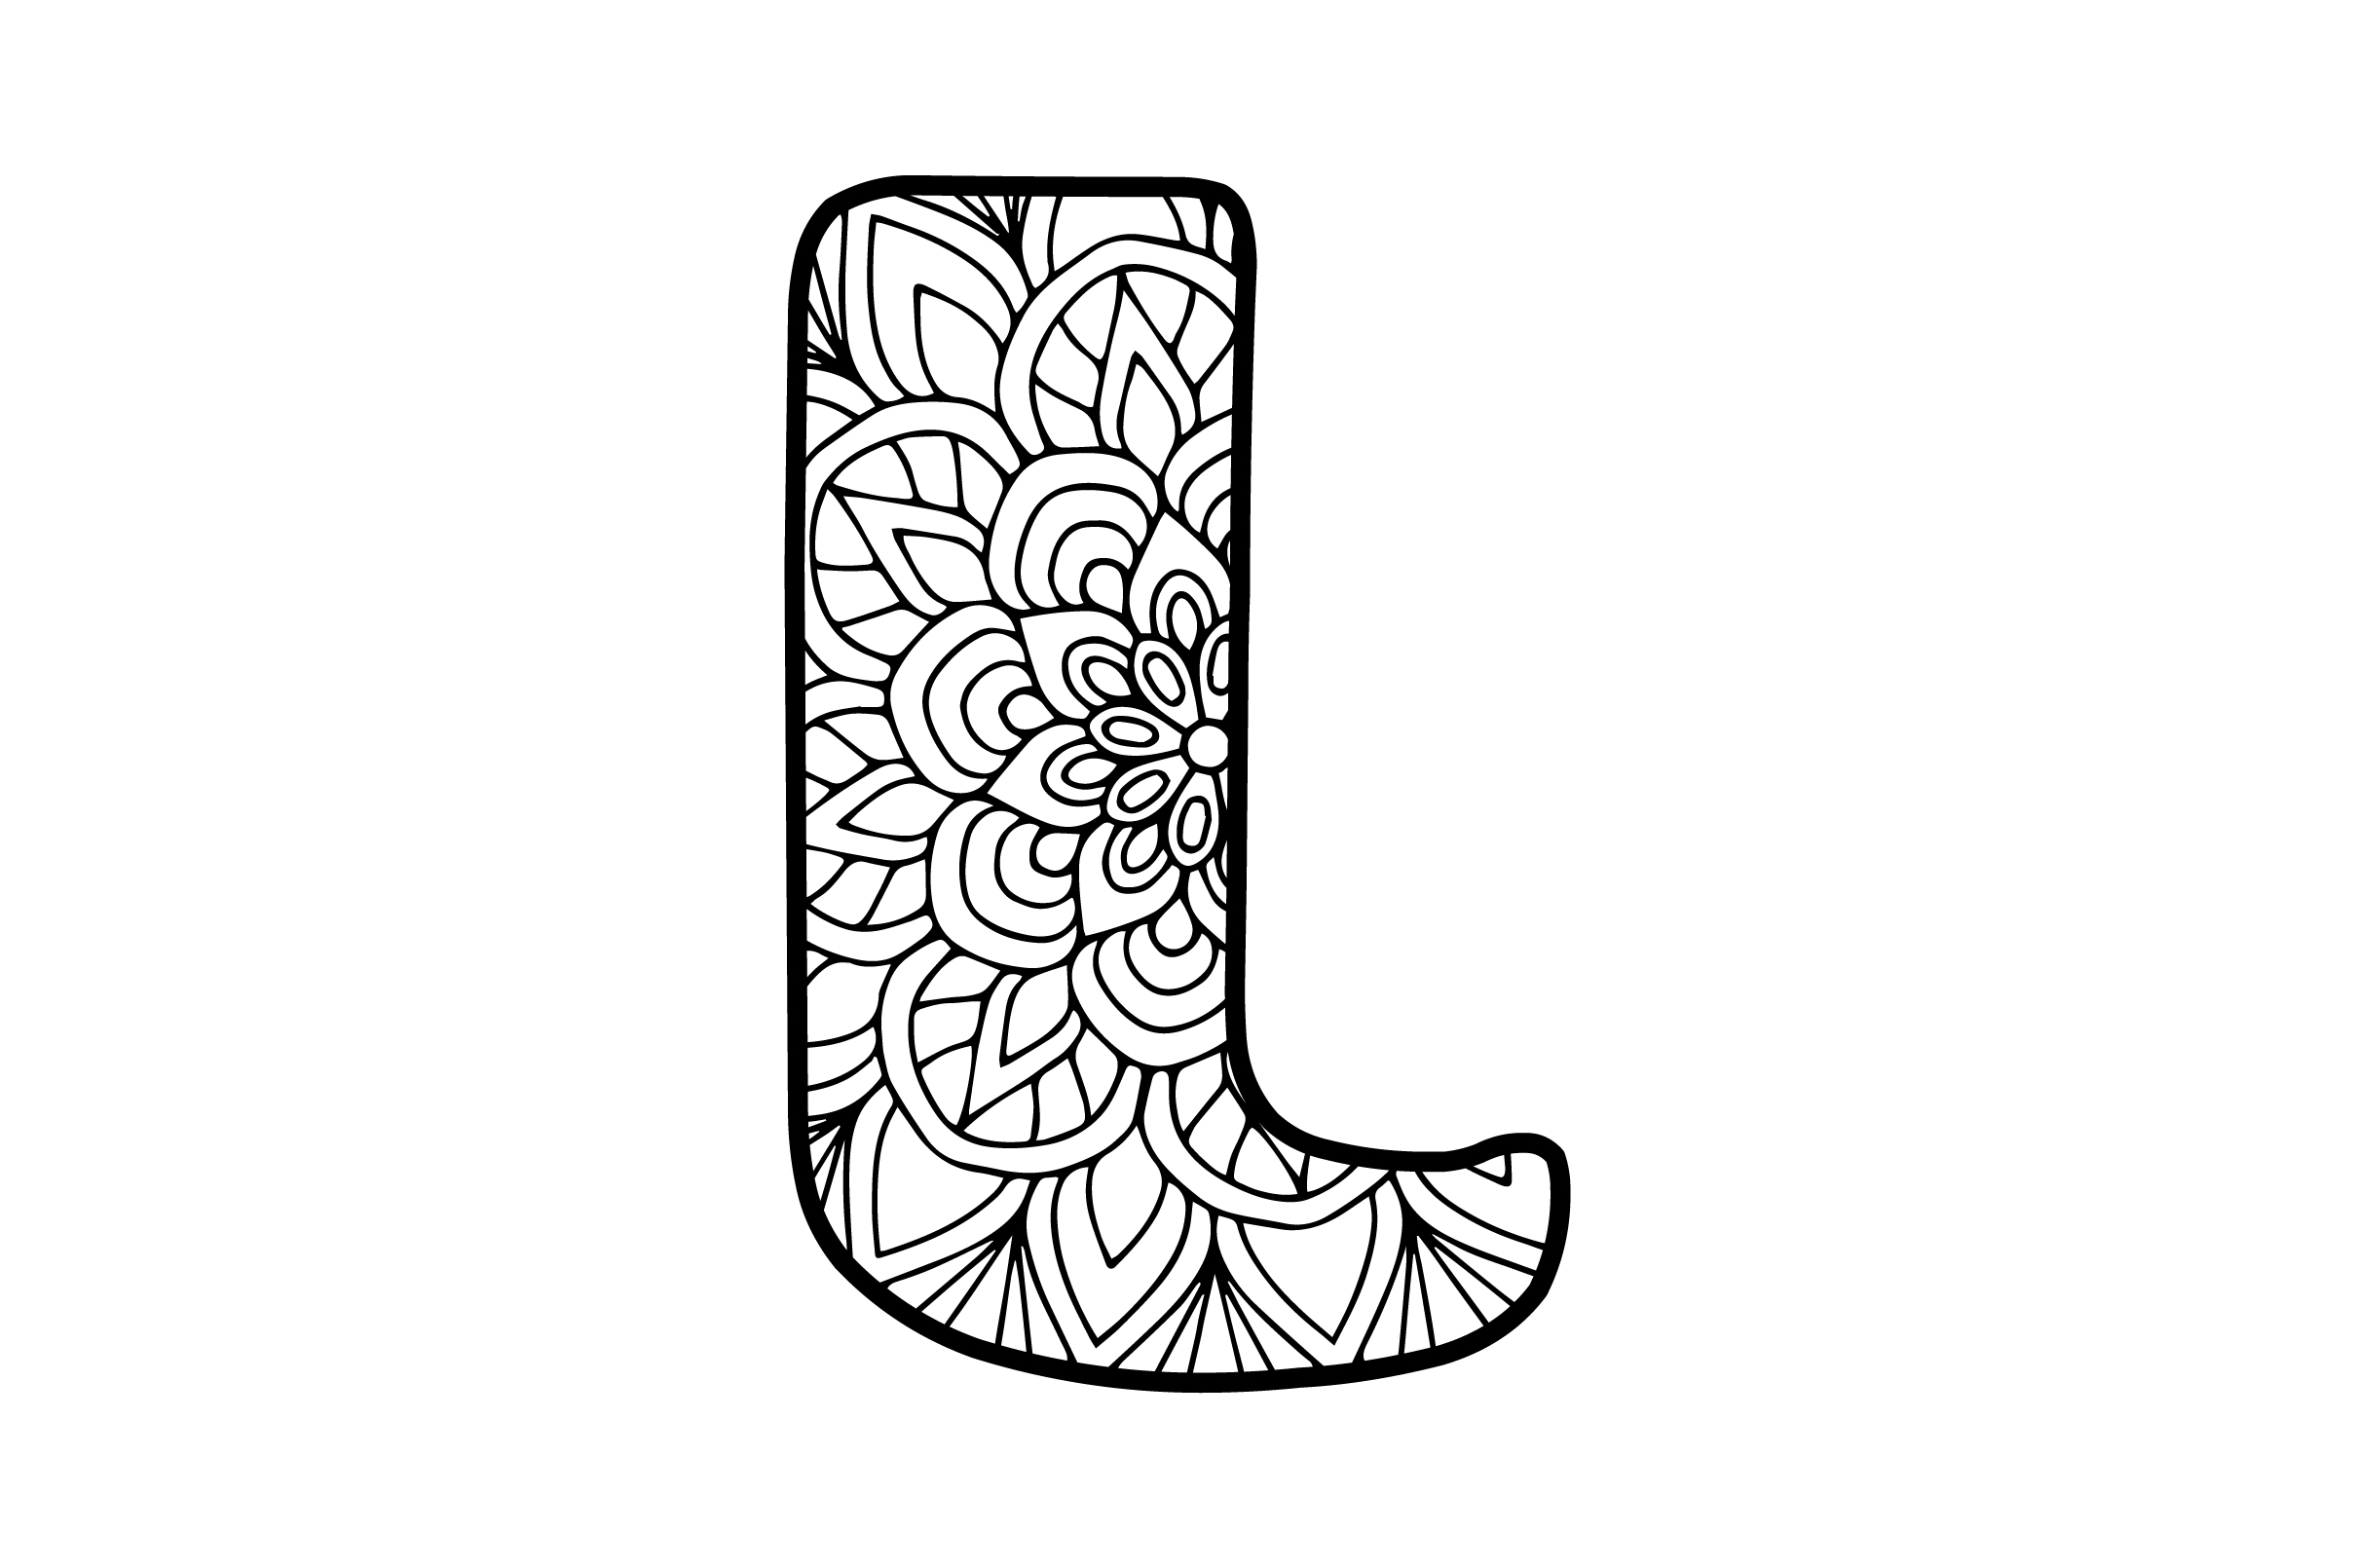 Download Free Mandala Alphabet L Svg Cut File By Creative Fabrica Crafts for Cricut Explore, Silhouette and other cutting machines.